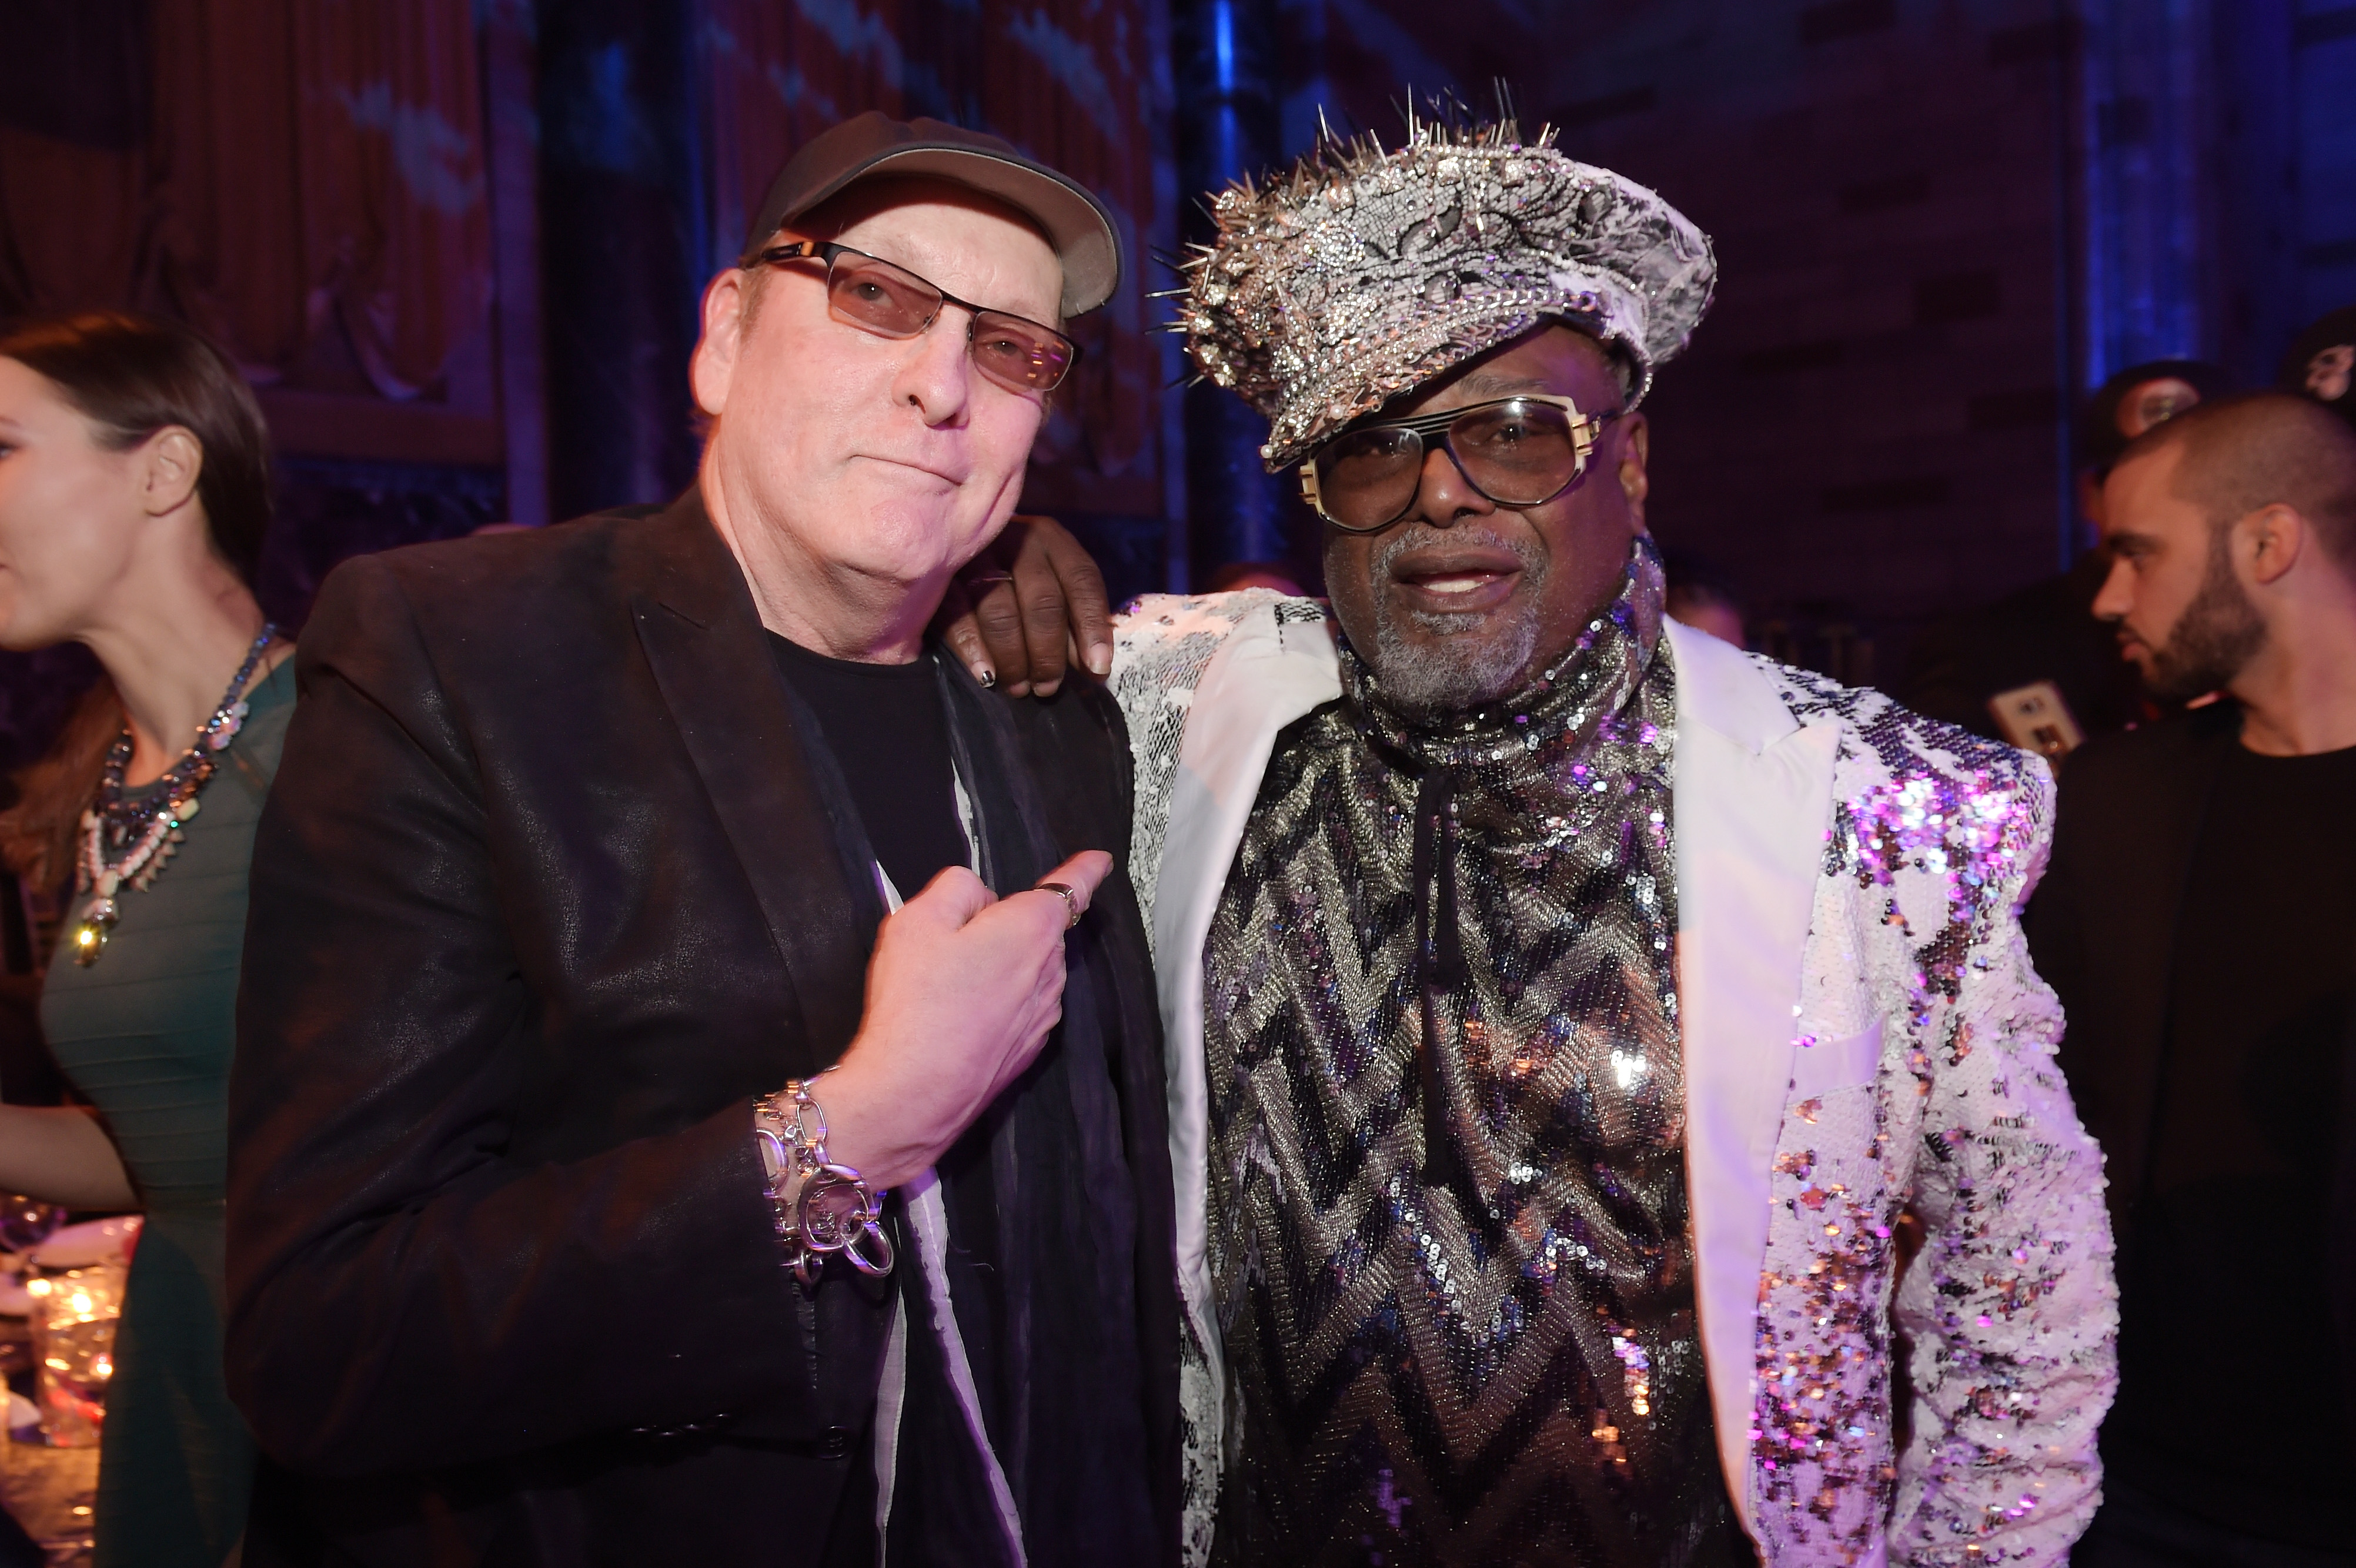 NEW YORK, NY - APRIL 13: Guitarist Rick Nielsen of Cheap Trick (L) and Singer/Songwriter George Clinton attend the 2017 SESAC Pop Awards on April 13, 2017 in New York City. (Photo by Jason Kempin/Getty Images for SESAC)